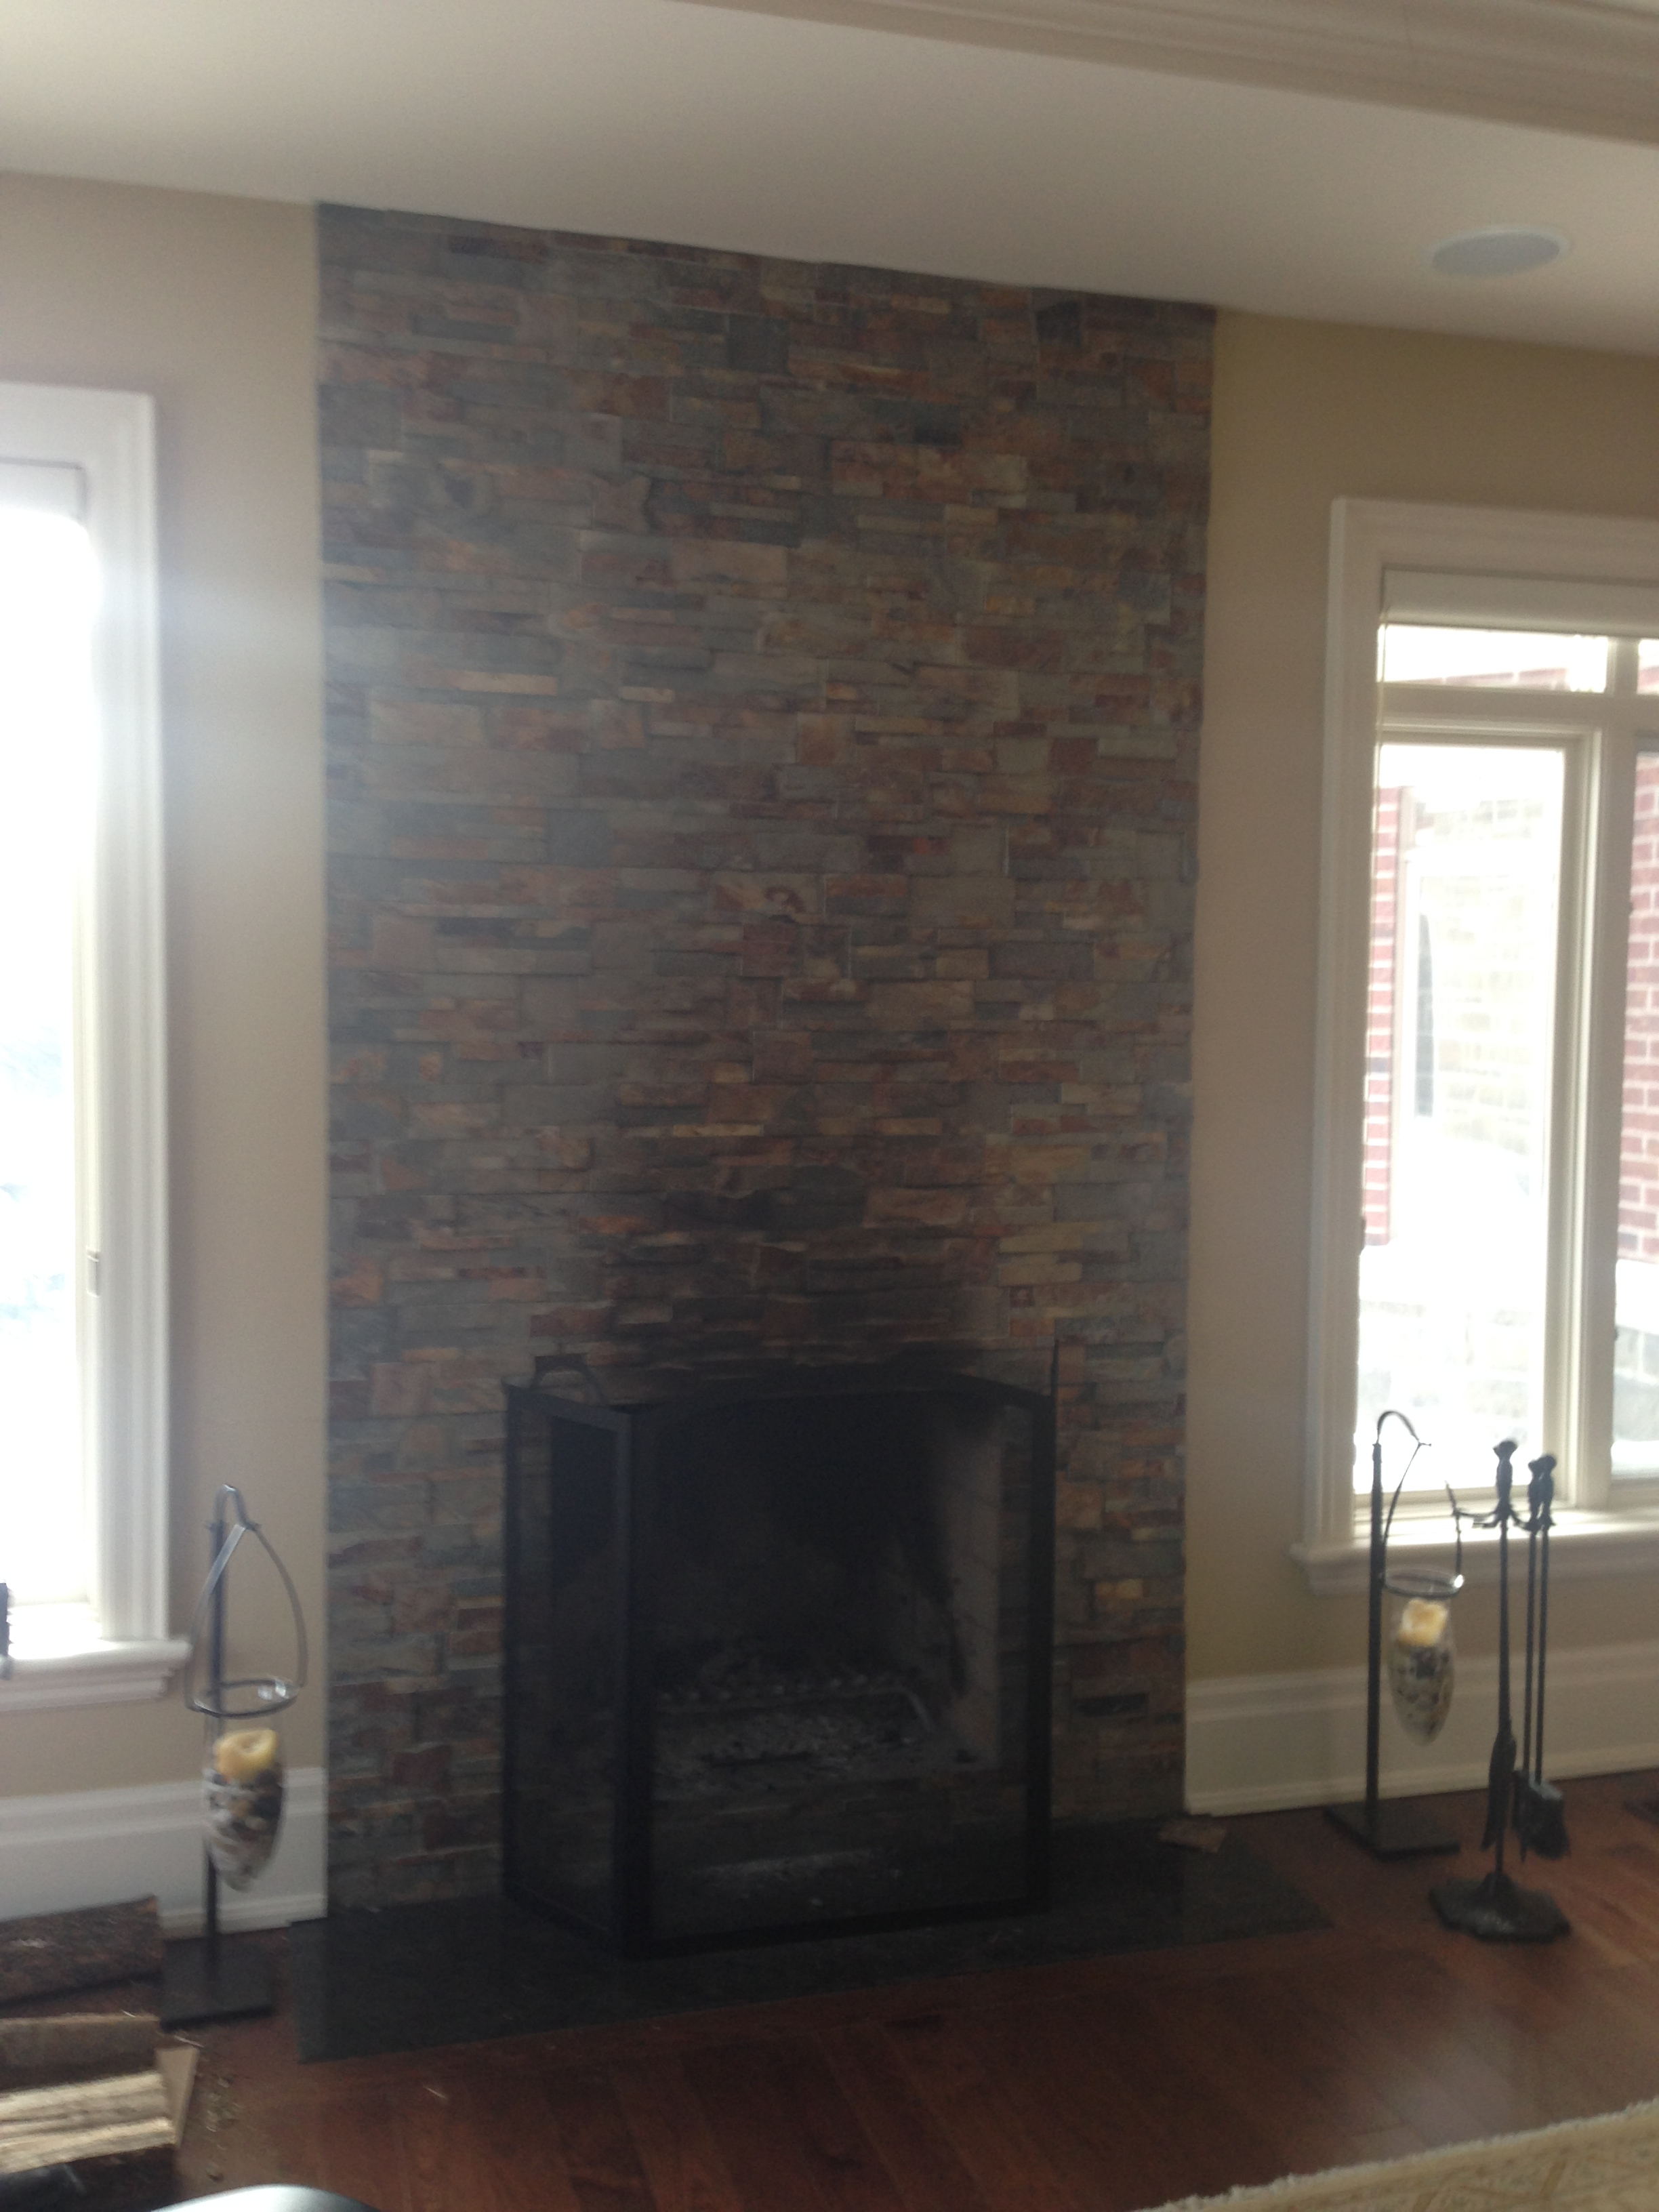 This is the existing fireplace